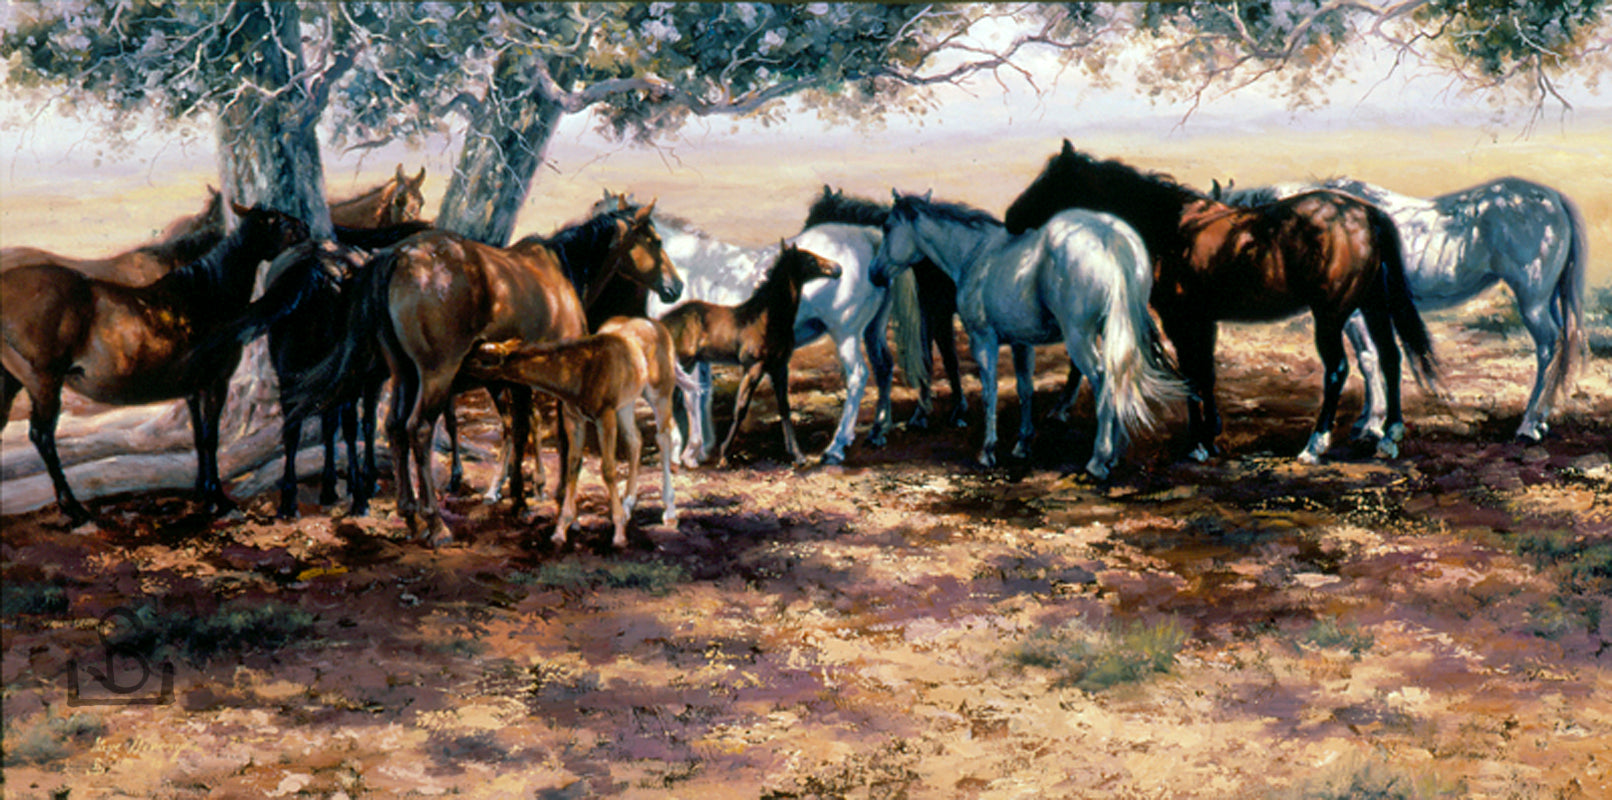 Cheyenne Social Club by Steve Devenyns is a Standard Print in various sizes. This piece features a small herd of horses finding shade in a tree. Steve Devenyns is a world renowned Fine Western Artists located in Cody, Wyoming. His Award winning western art has been featured in the Buffalo Bill Art Show, Prix de West.